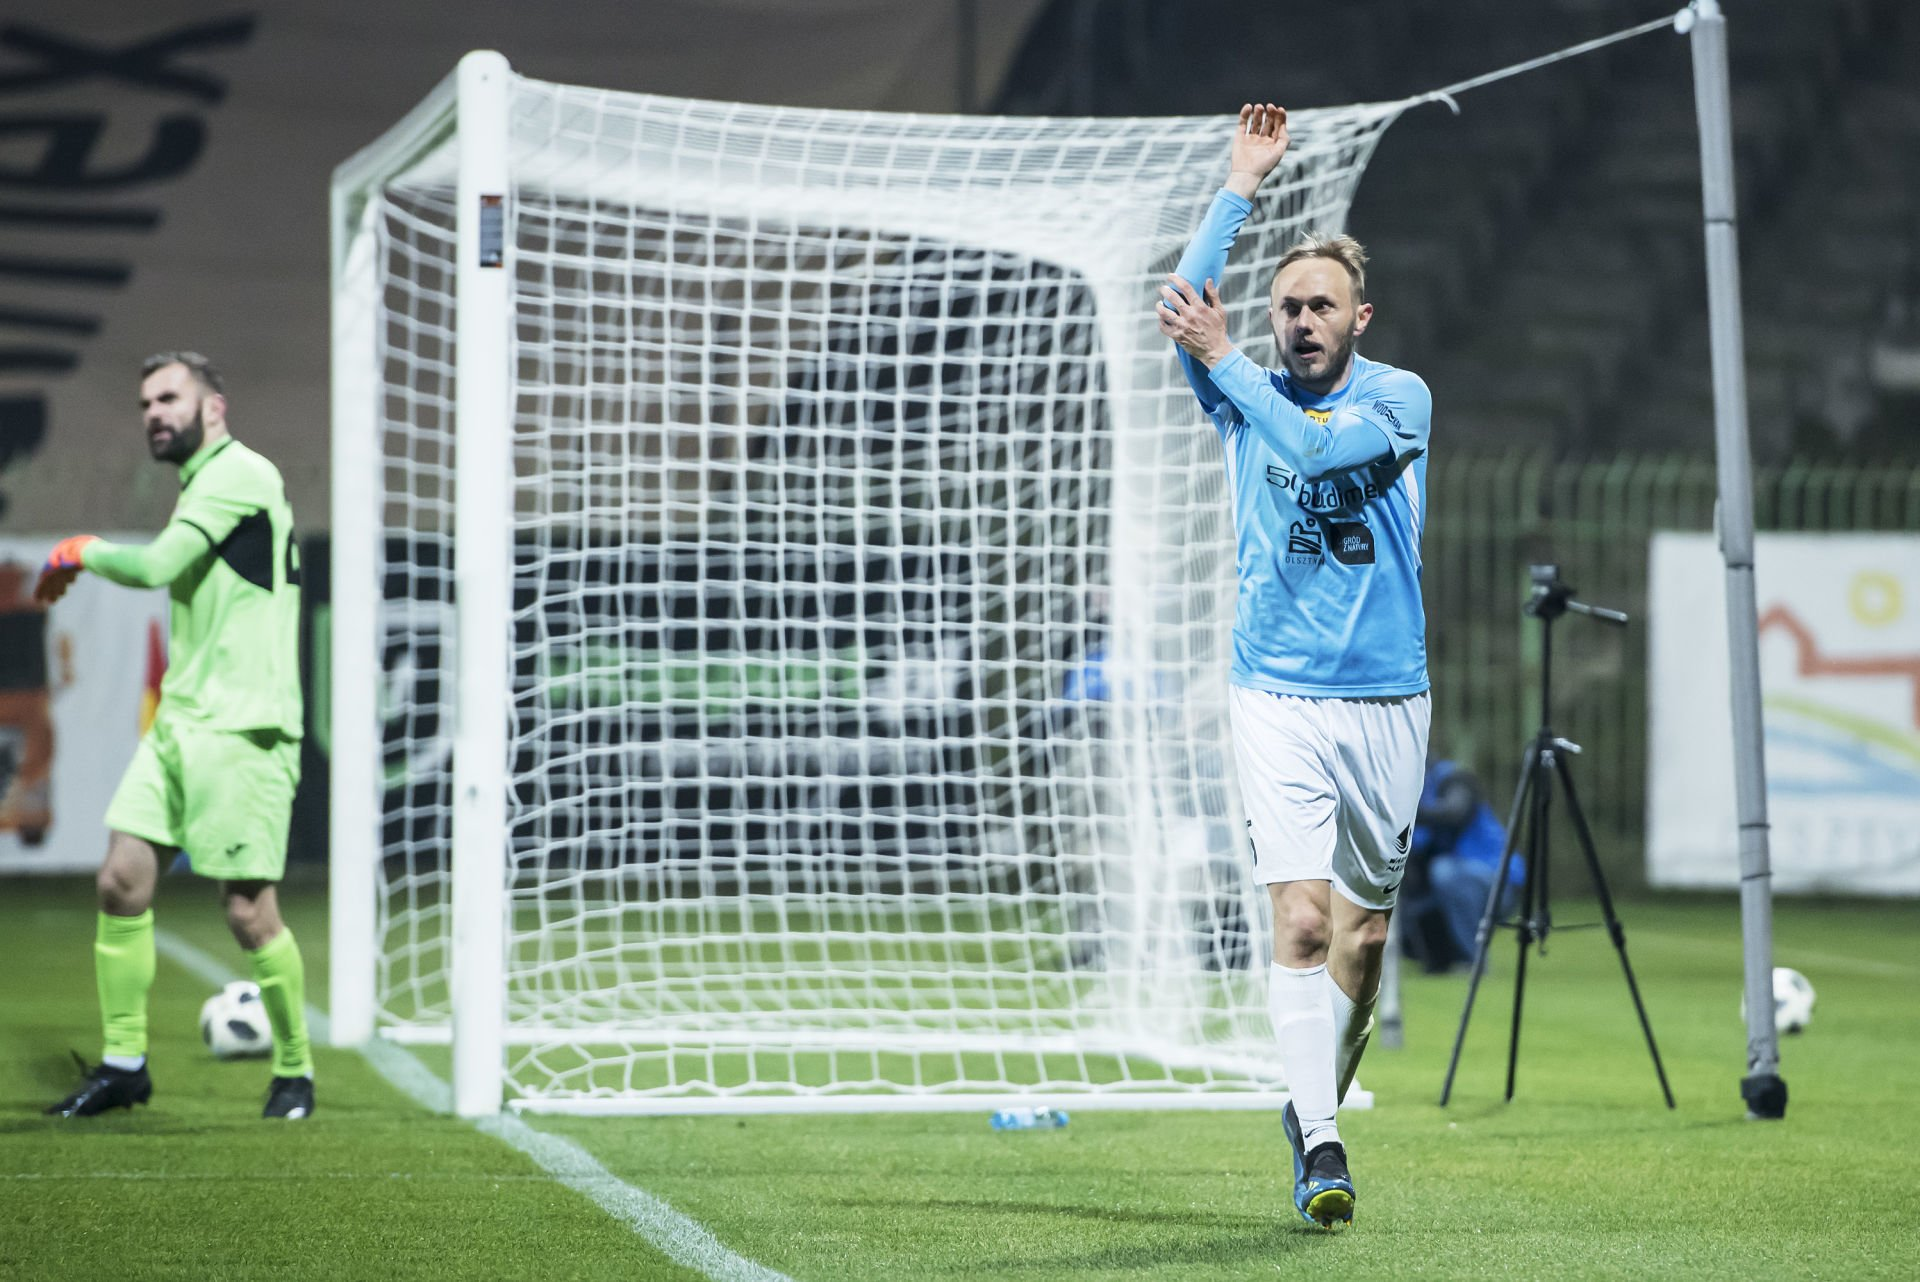 Olsztyn 17.11.2018 pilka nozna Fortuna I liga Stomil Olsztyn - Bytovia Bytow football Polish first league Stomil Olsztyn - Bytovia Bytow nz Grzegorz Lech fot. Kacper Kirklewski / 400mm.pl / NEWSPIX.PL --- Newspix.pl *** Local Caption *** www.newspix.pl mail us: info@newspix.pl call us: 0048 022 23 22 222 --- Polish Picture Agency by Ringier Axel Springer Poland